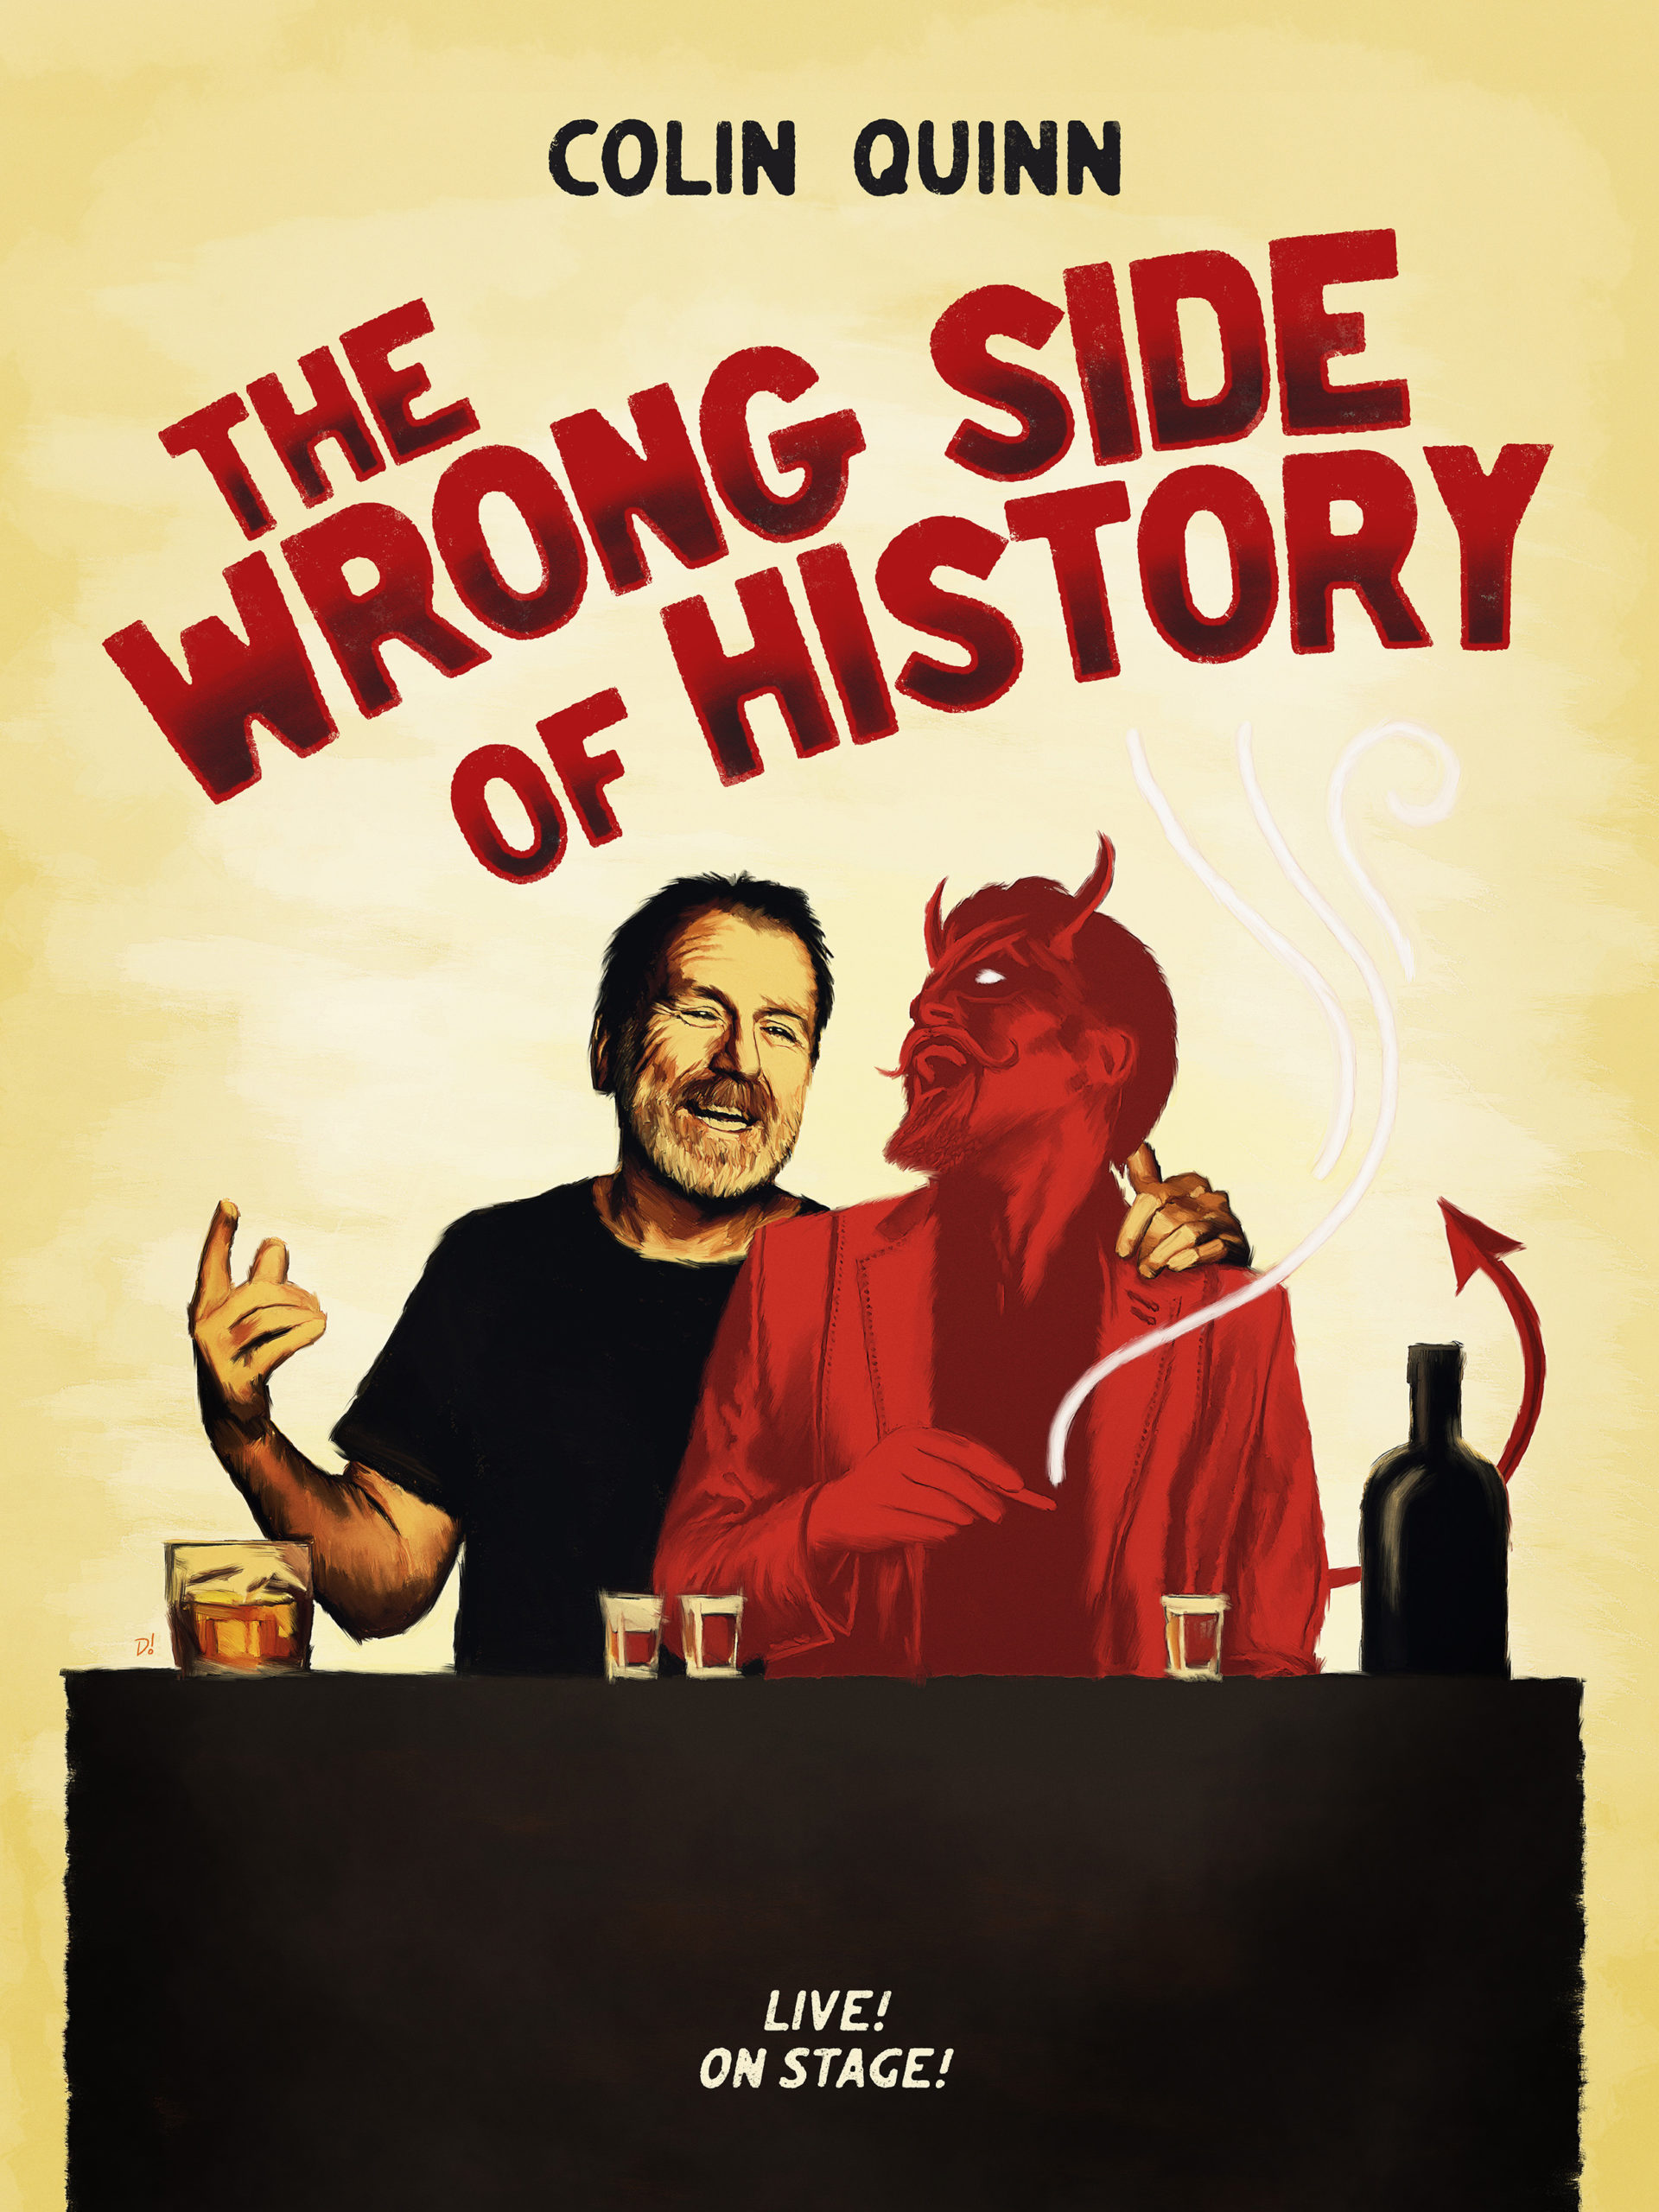 CANCELED Colin Quinn: The Wrong Side of History